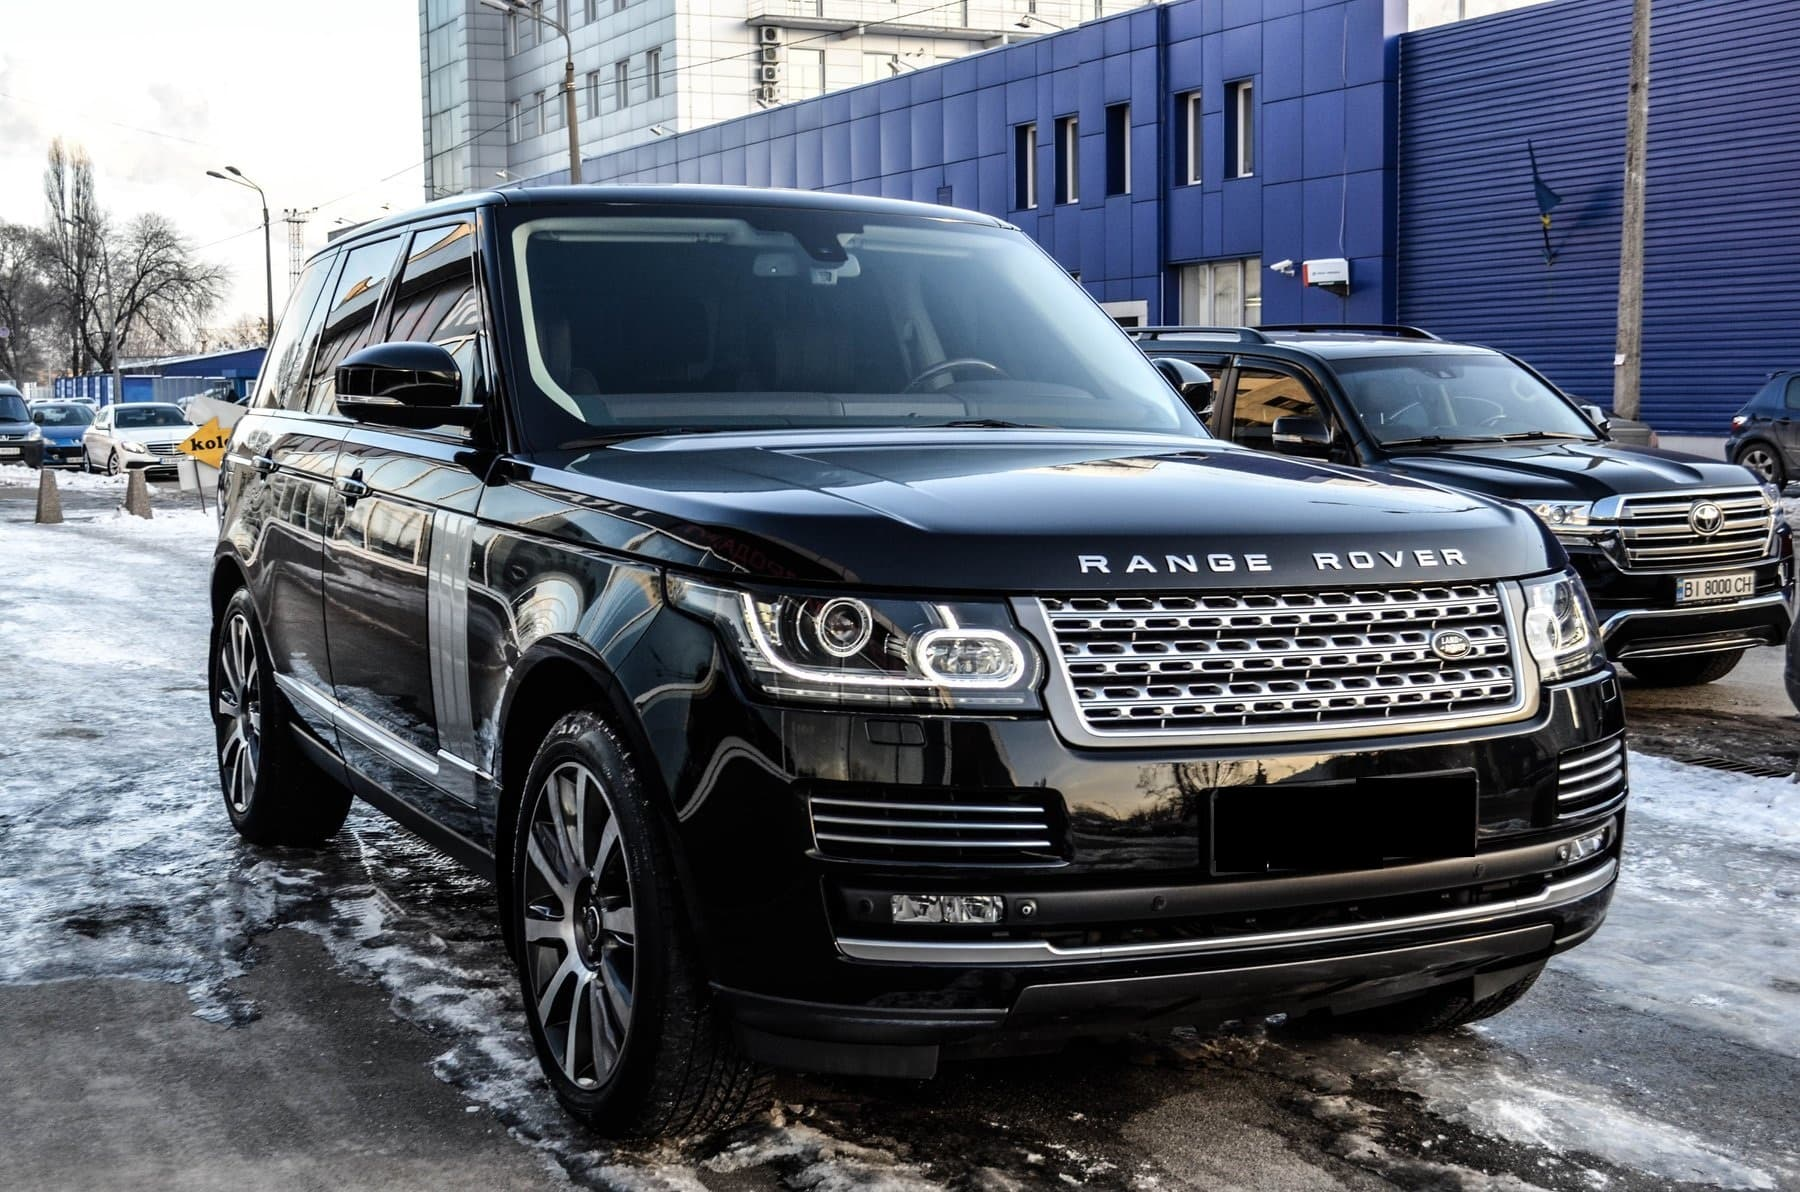 Land Rover Range Rover AUTOBIOGRAPHY - фото